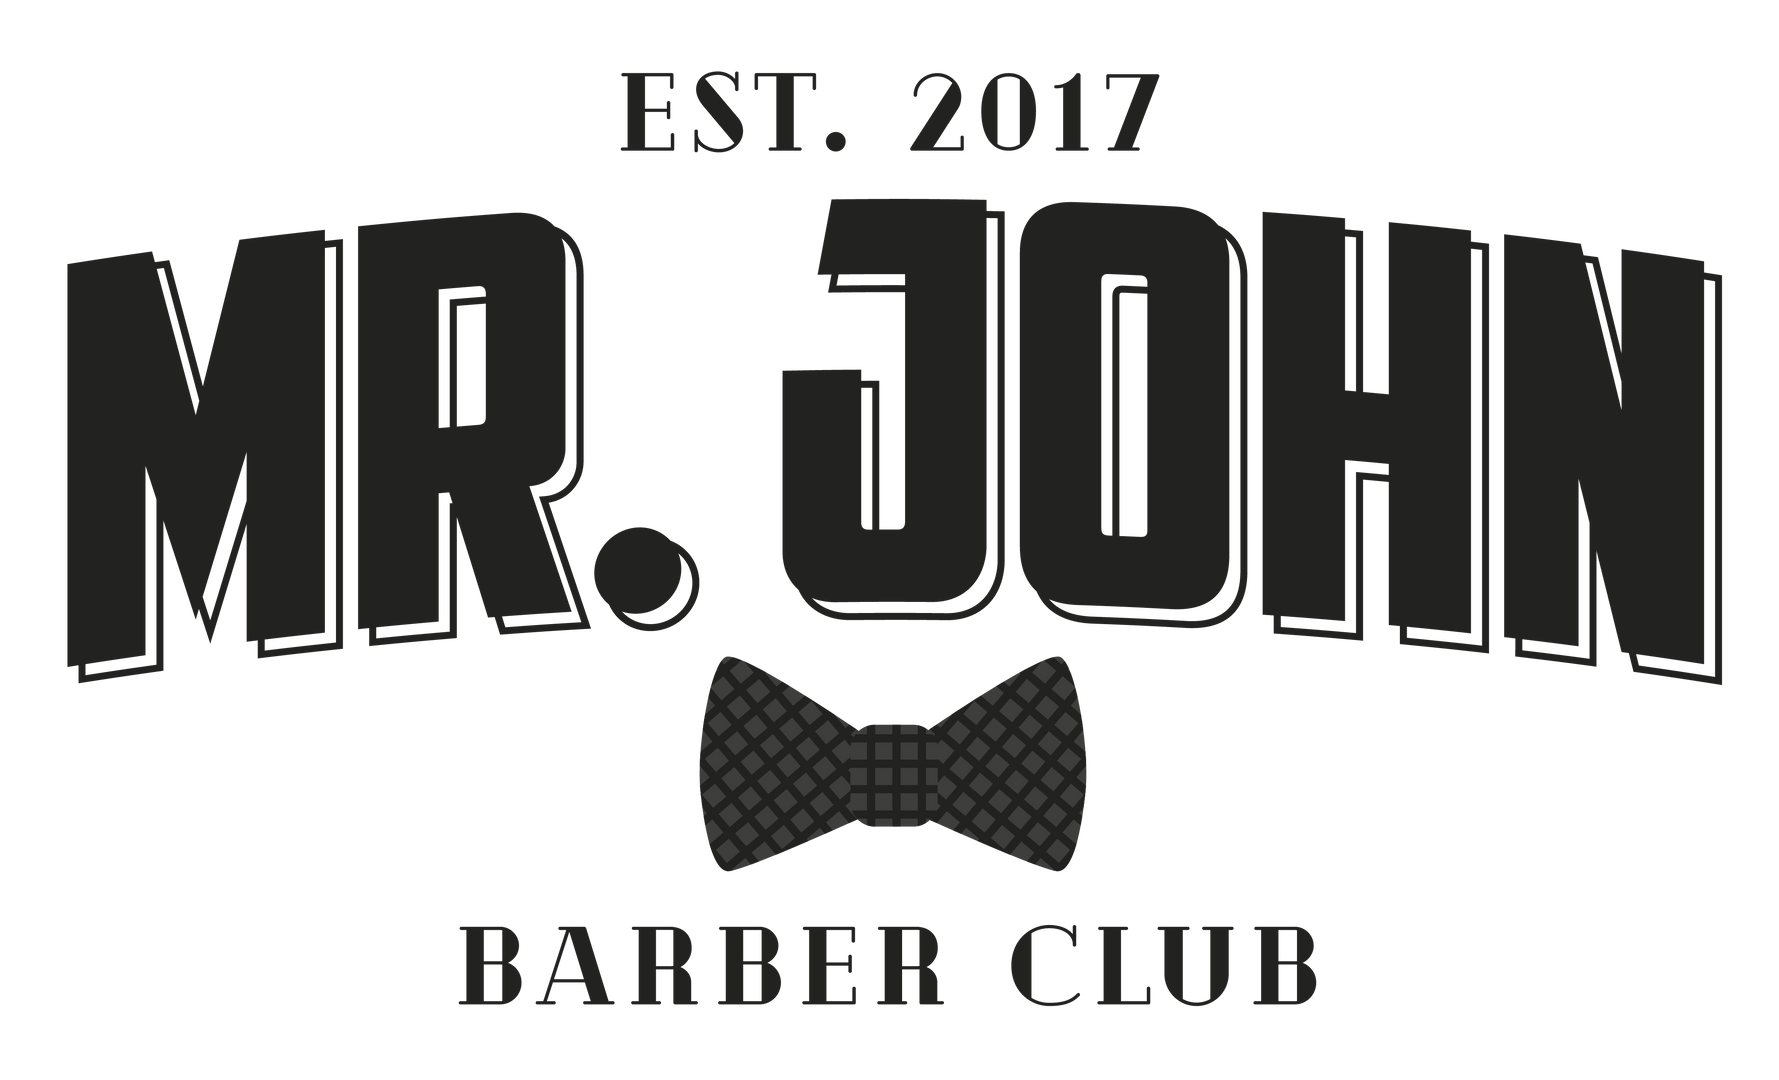 Mr. John Barber Club